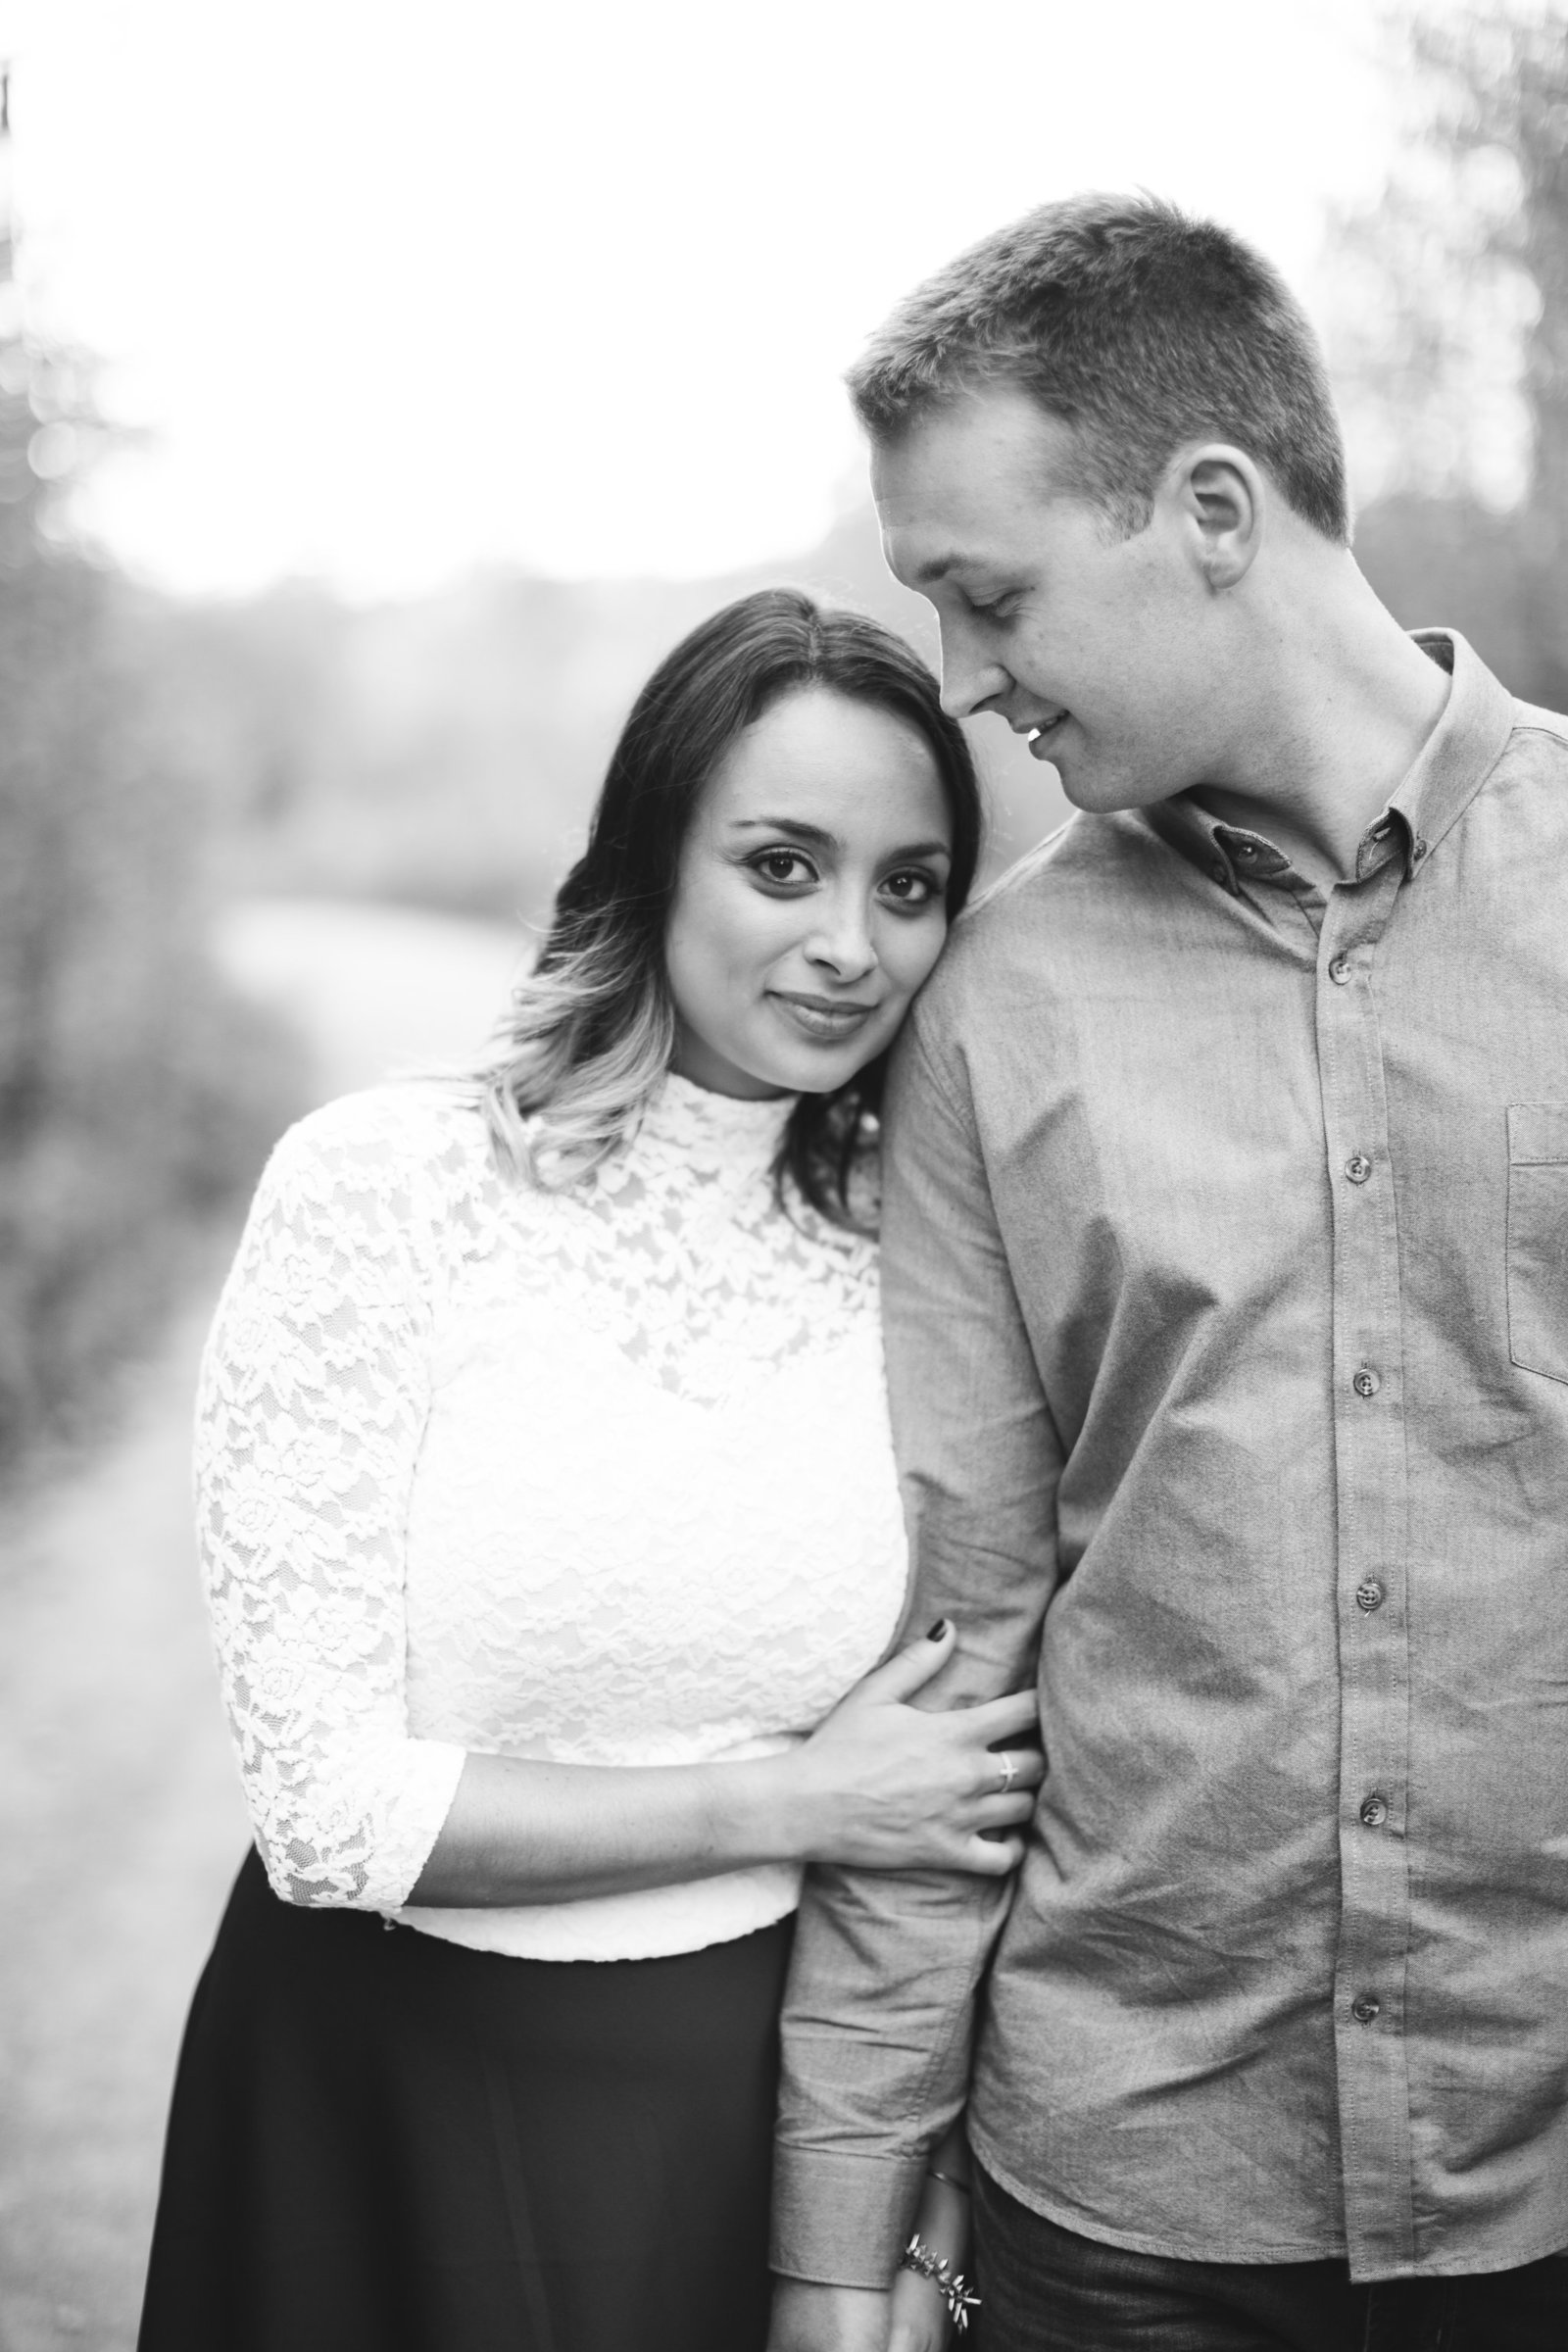 Saint John Engagement Photos by Jordan & Judith - Saint John NB Wedding Photographers and Filmmakers36